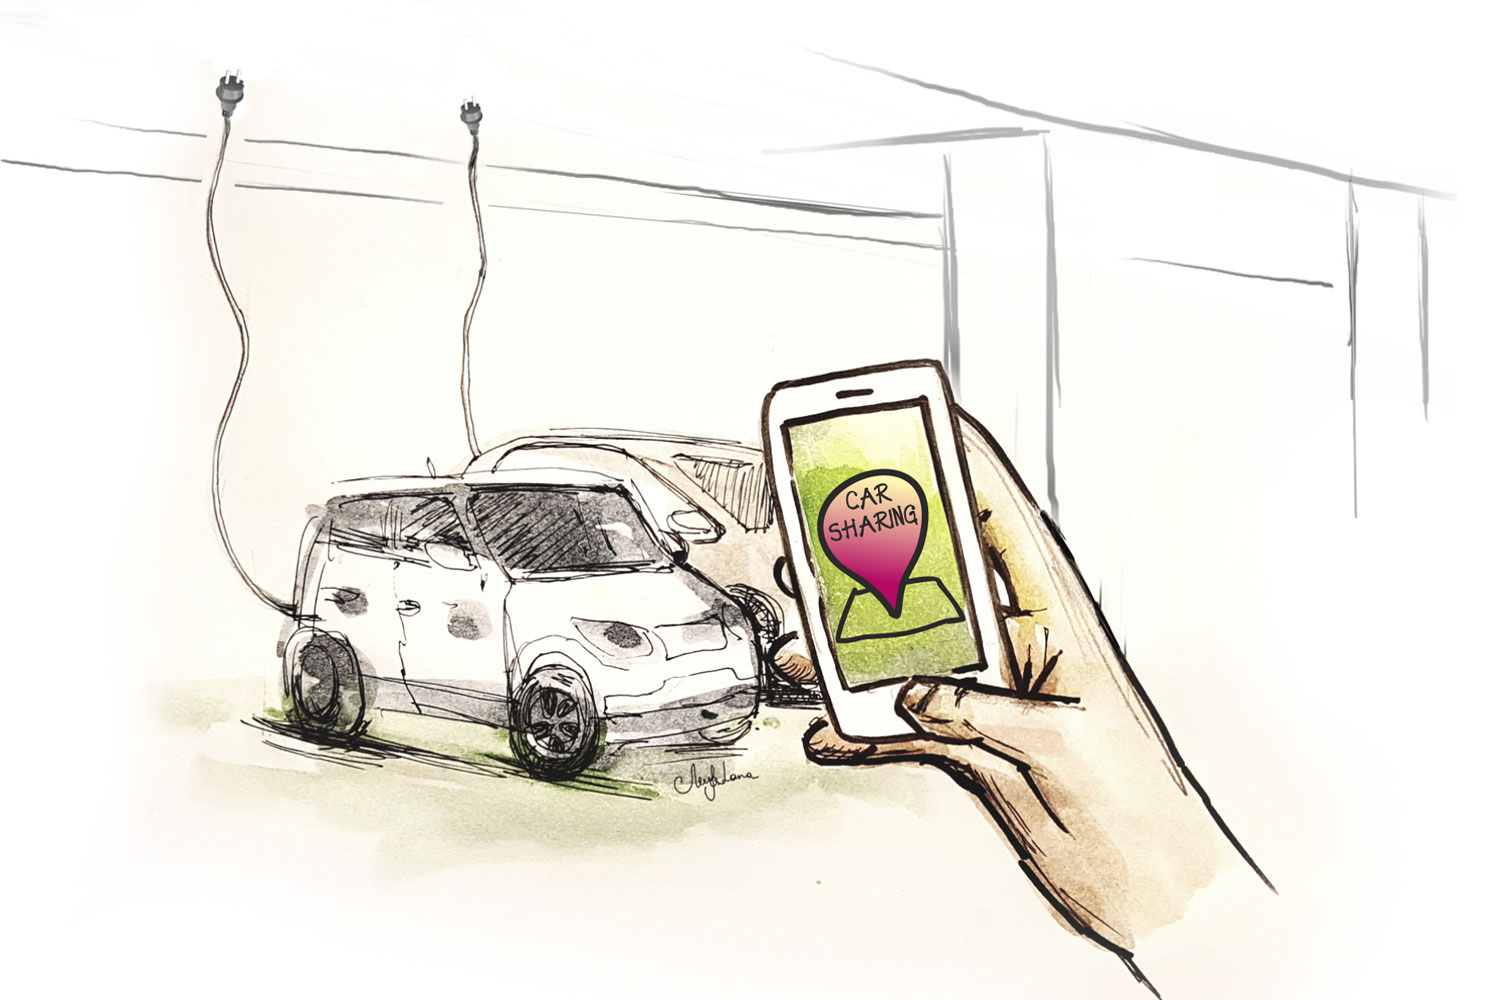 illustration-by-lanagraphic-smart-city-parking-car-sharing